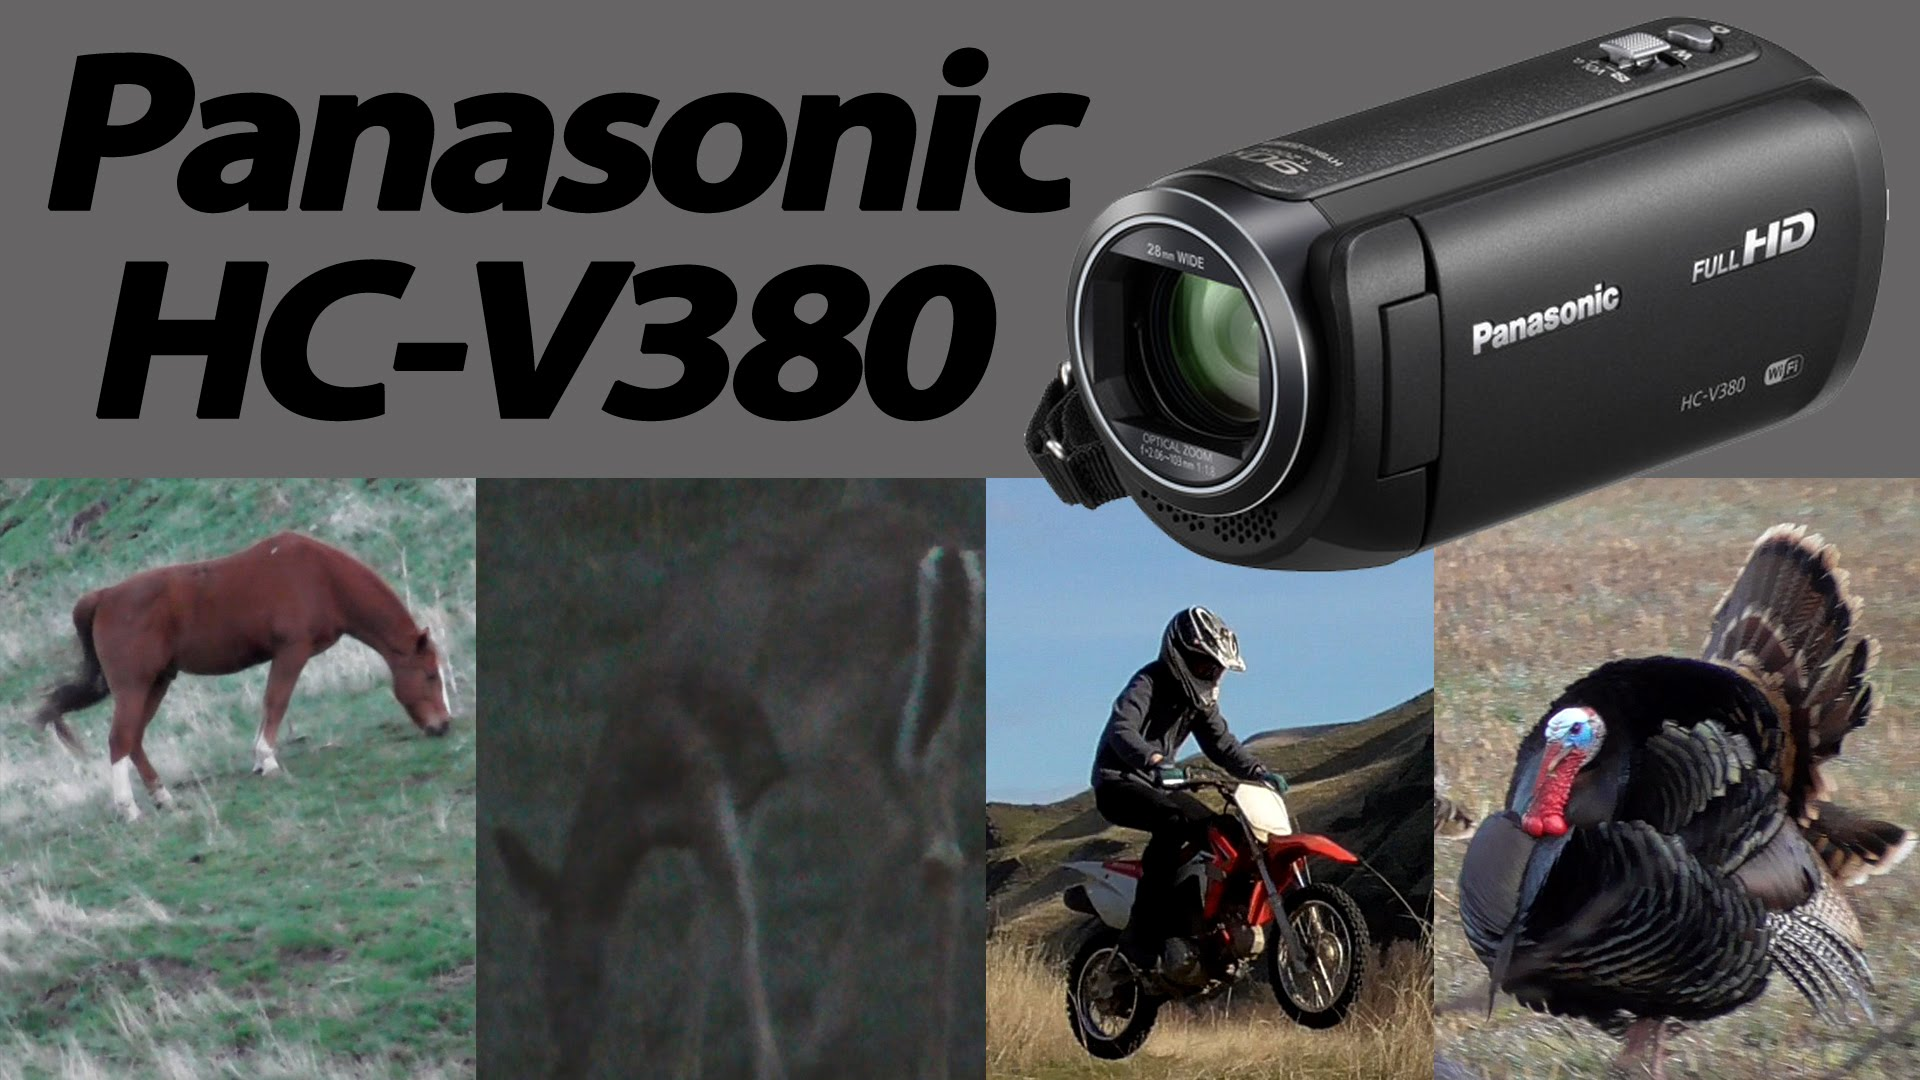 panasonic hc-v380 test